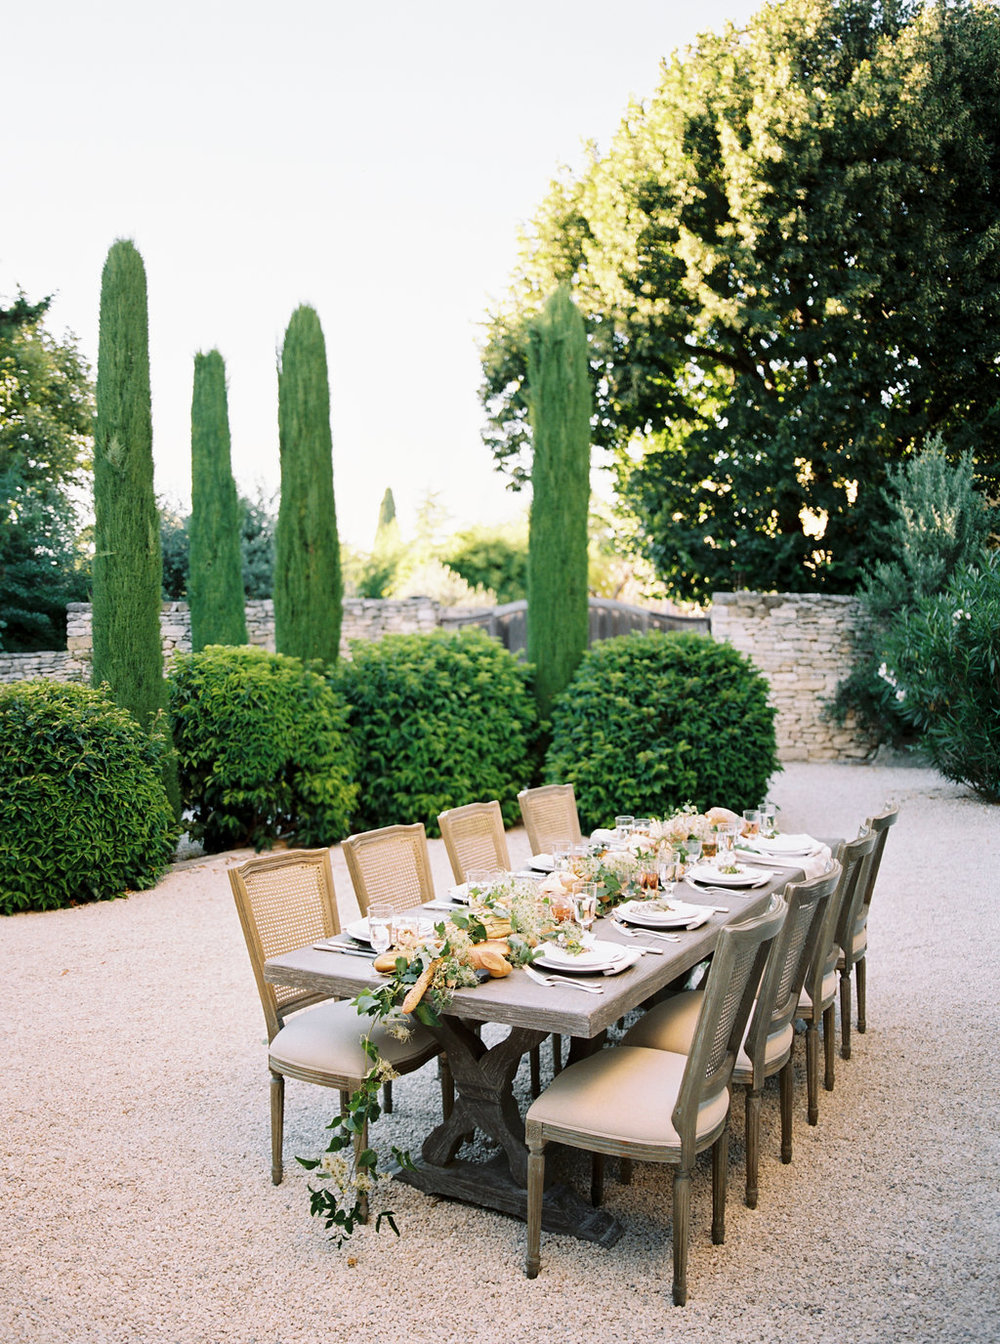 ProvenceFranceWeddingKatieGrantPhoto(245of249).jpg